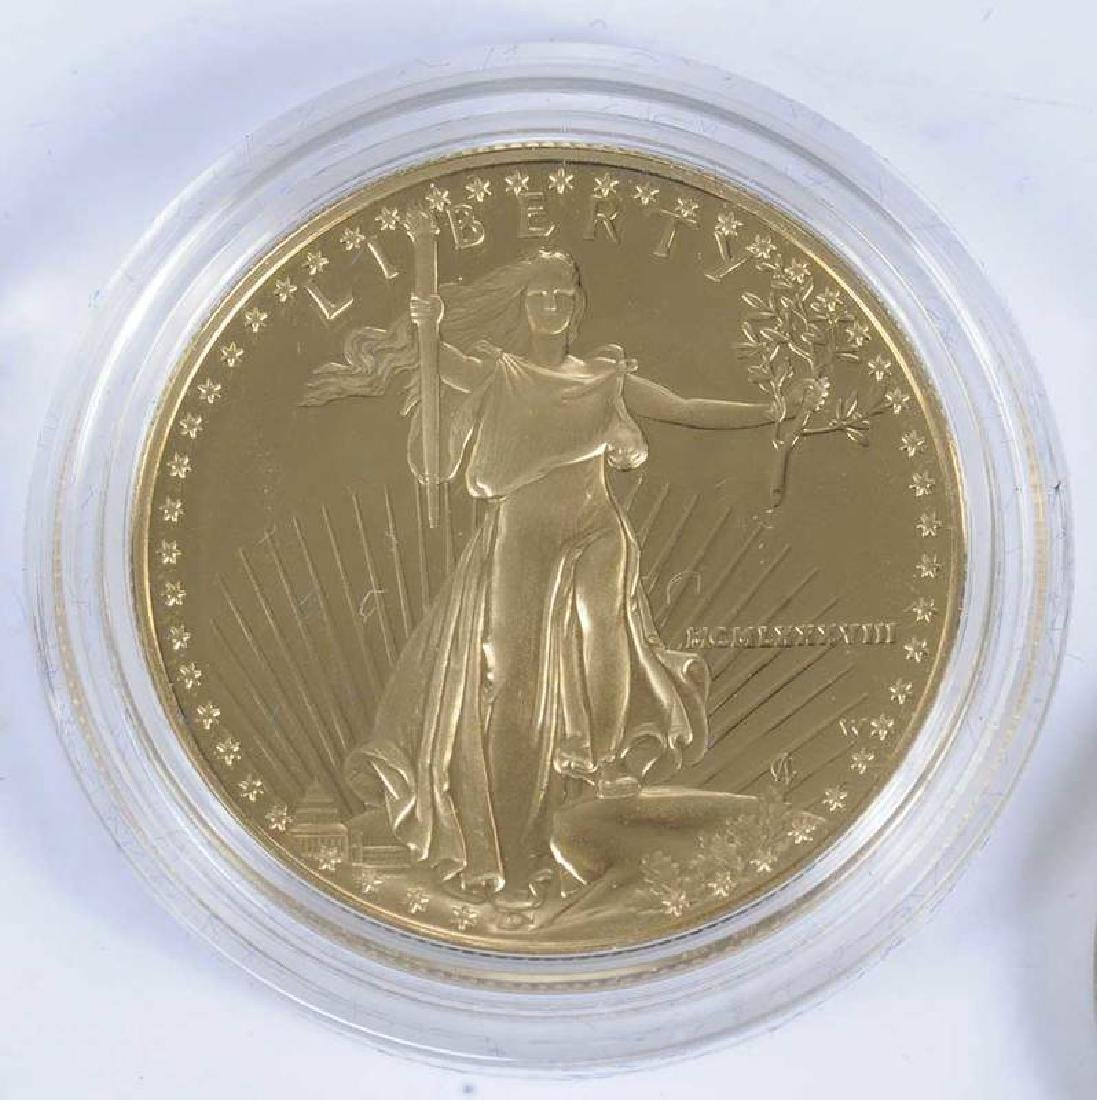 One Gold Ounce 50 Dollar Coin With Other Coins - 2